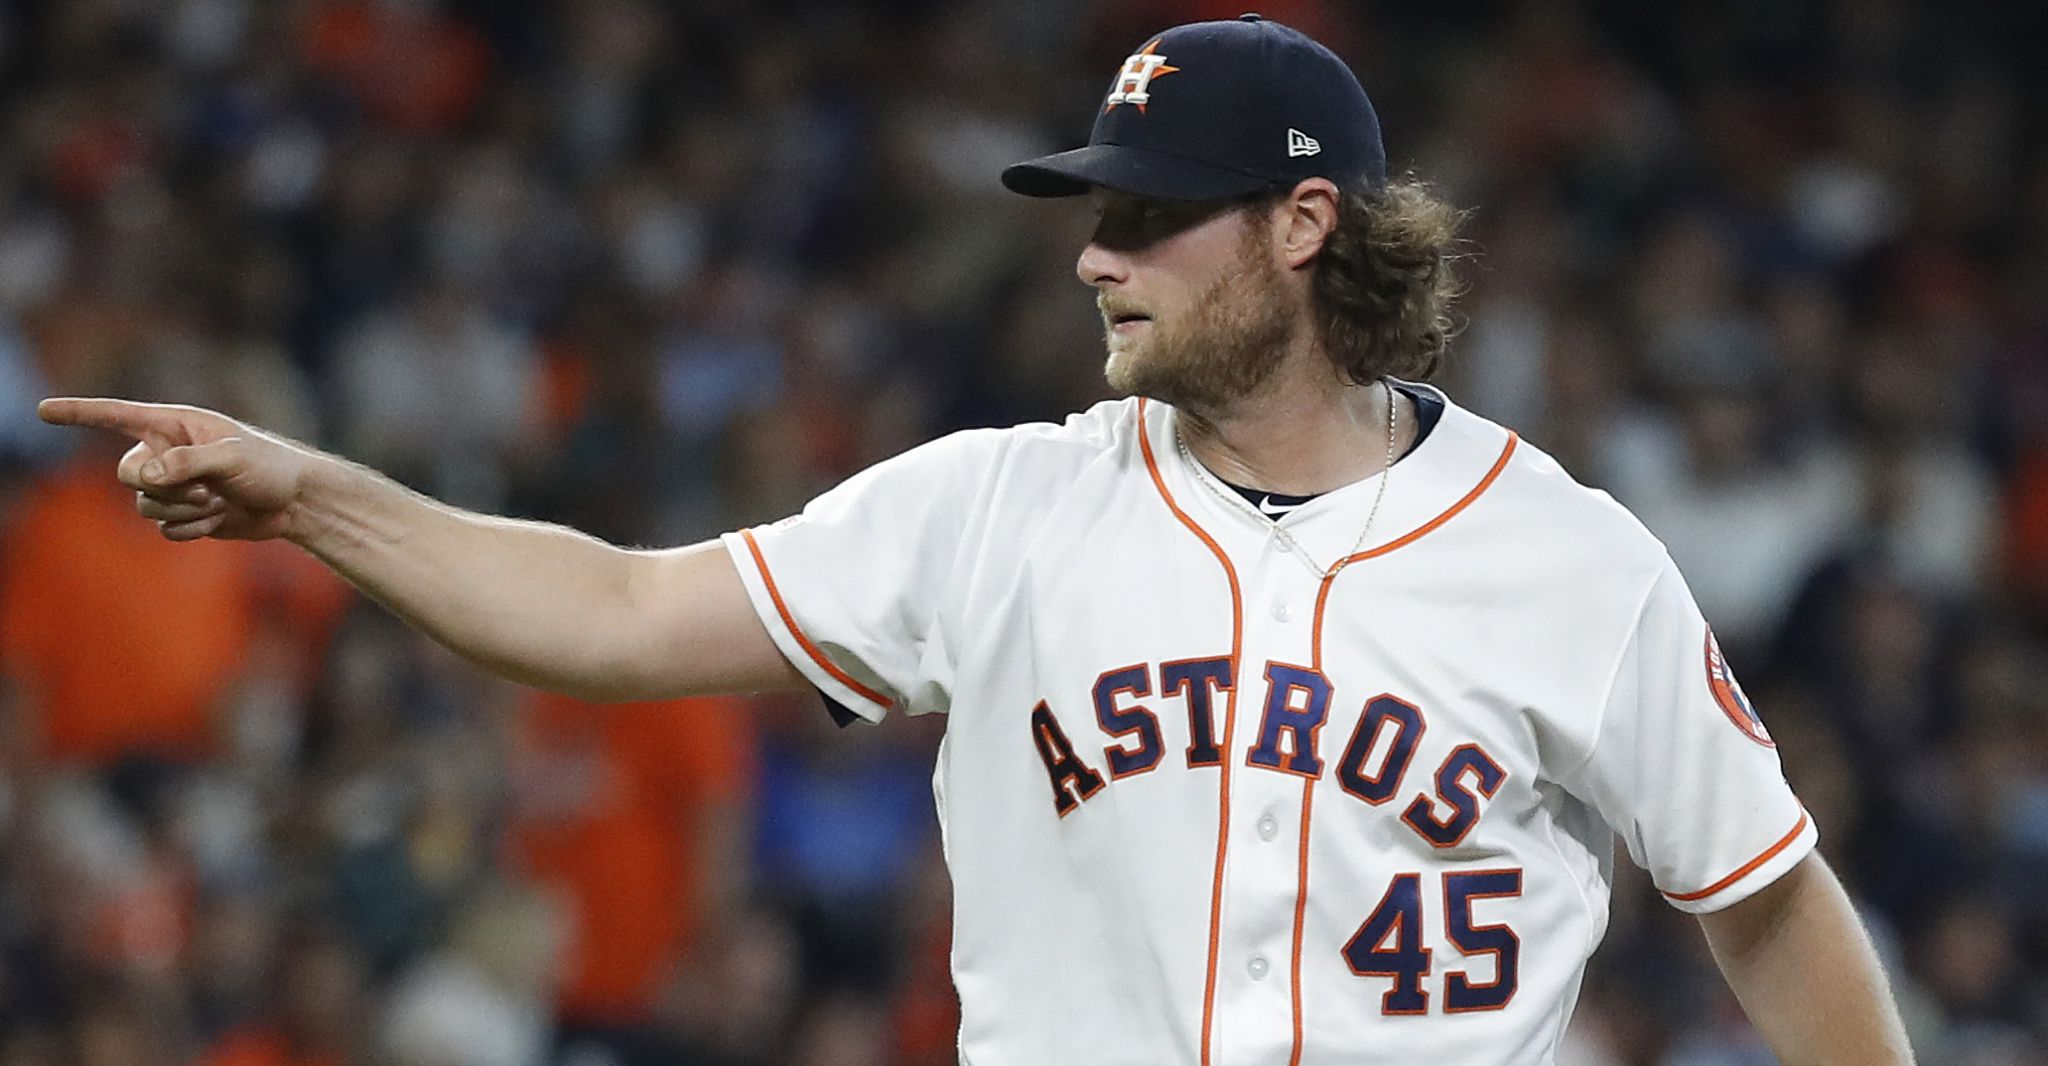 Astros injury report: Update on Gerrit Cole